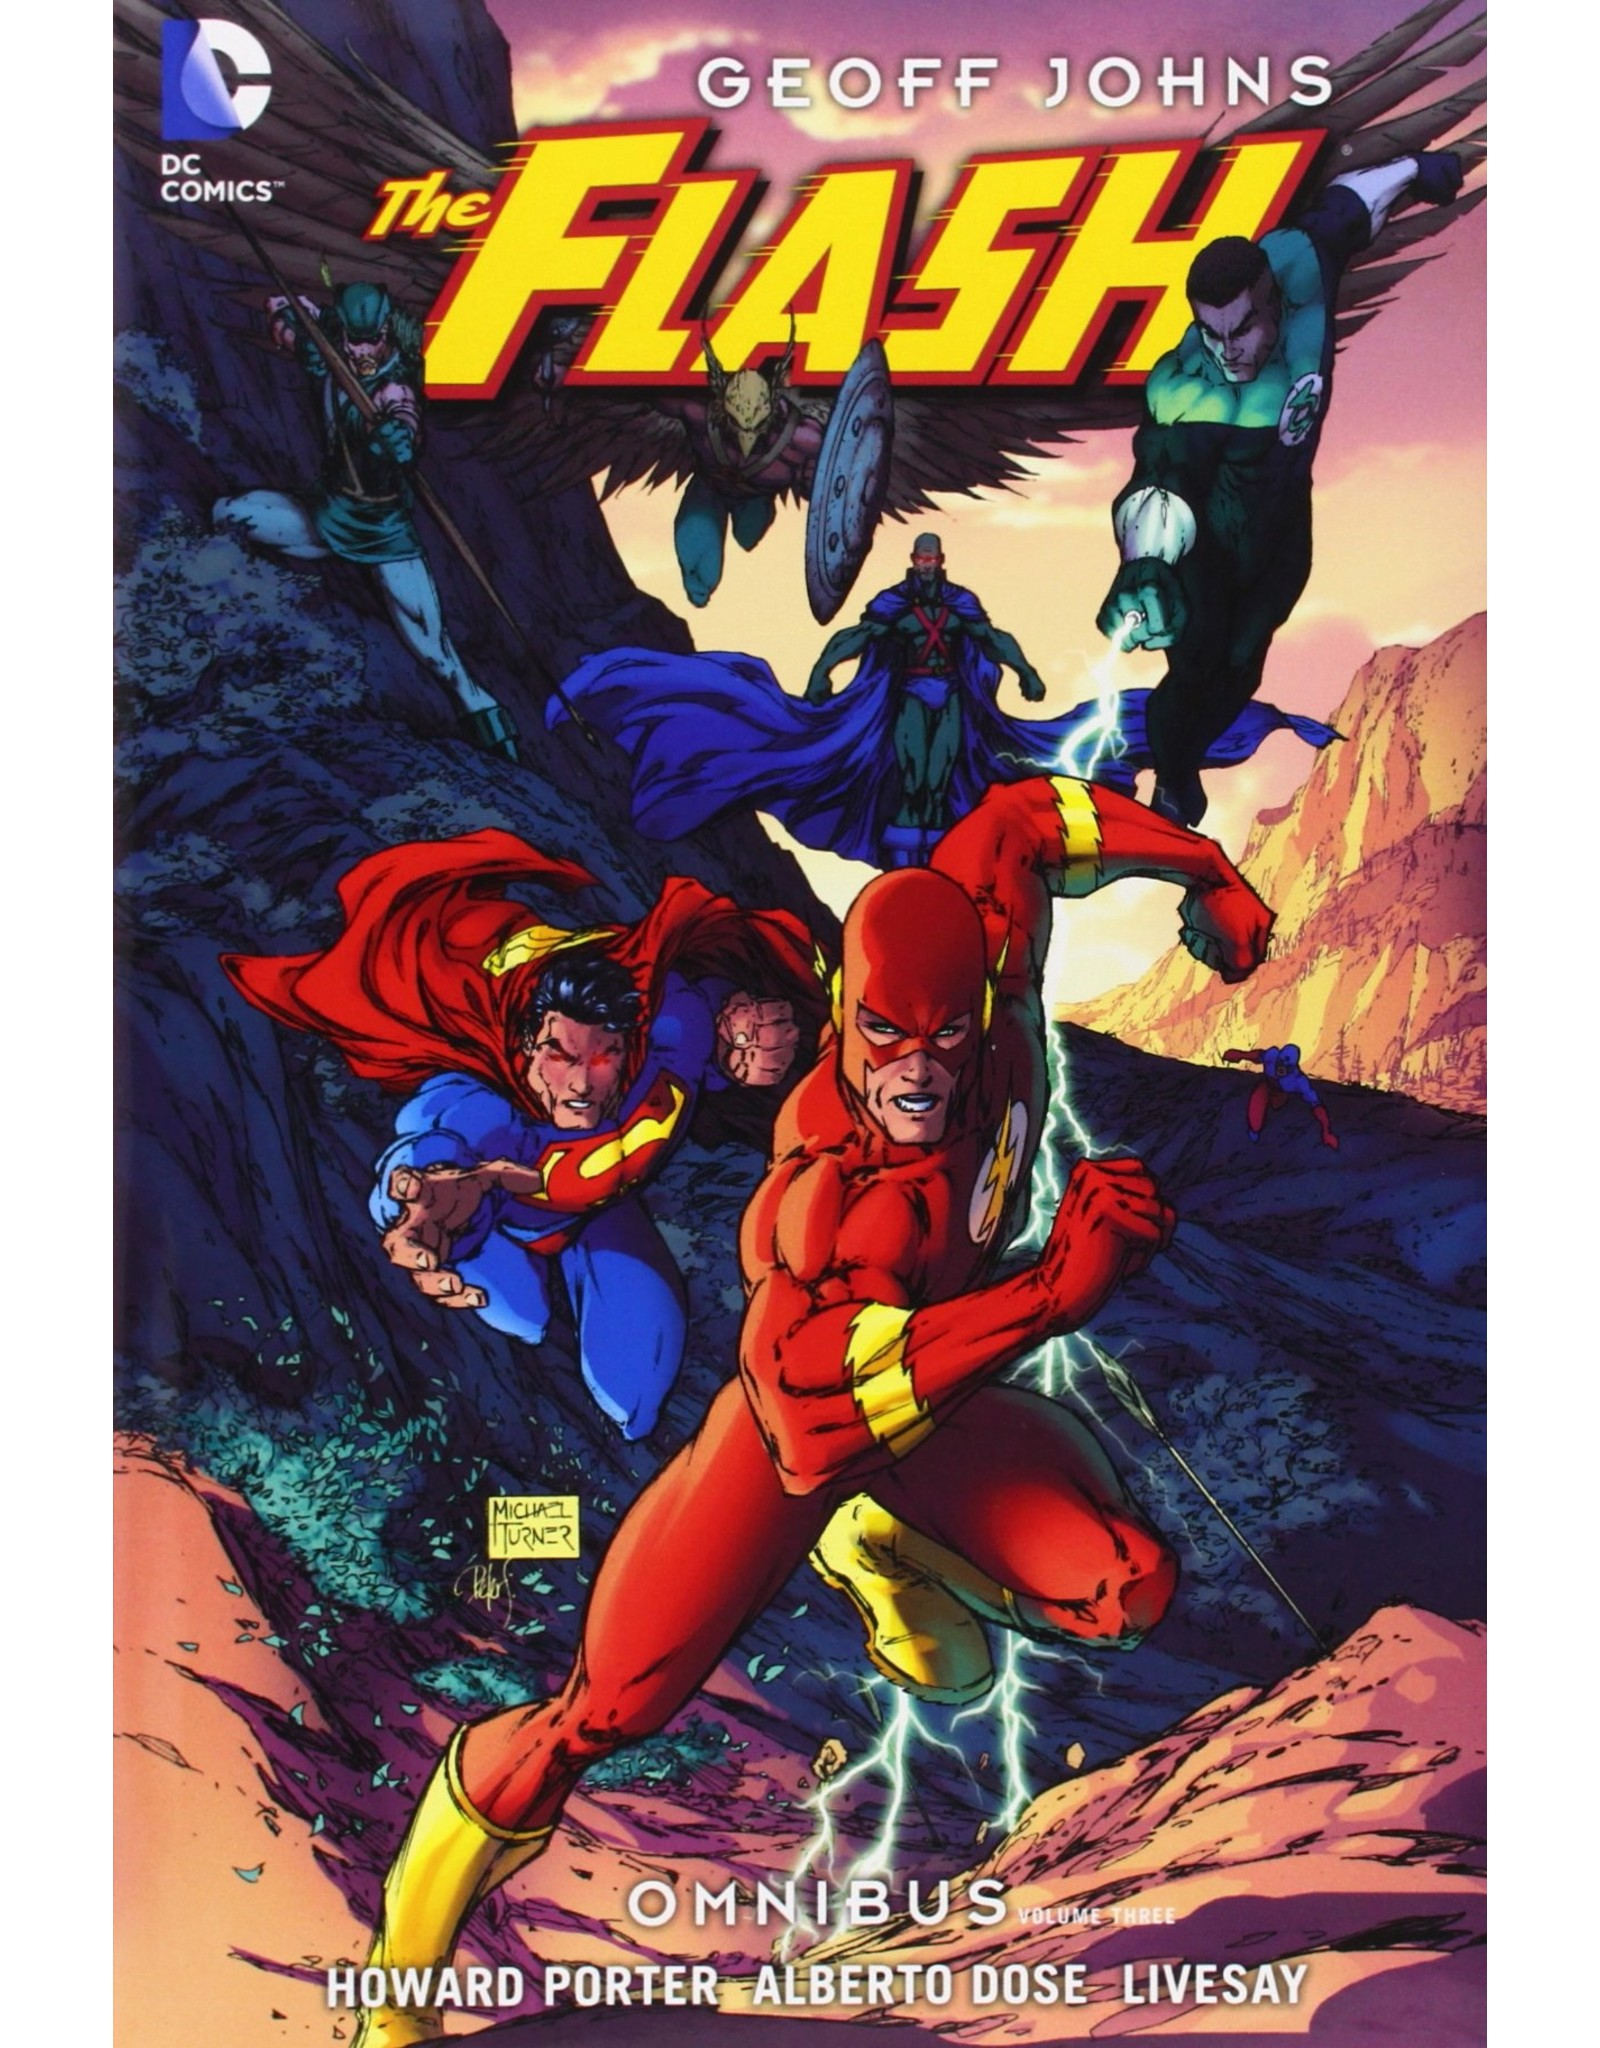 DC COMICS FLASH OMNIBUS BY GEOFF JOHNS HC #3 (OOP SEALED)